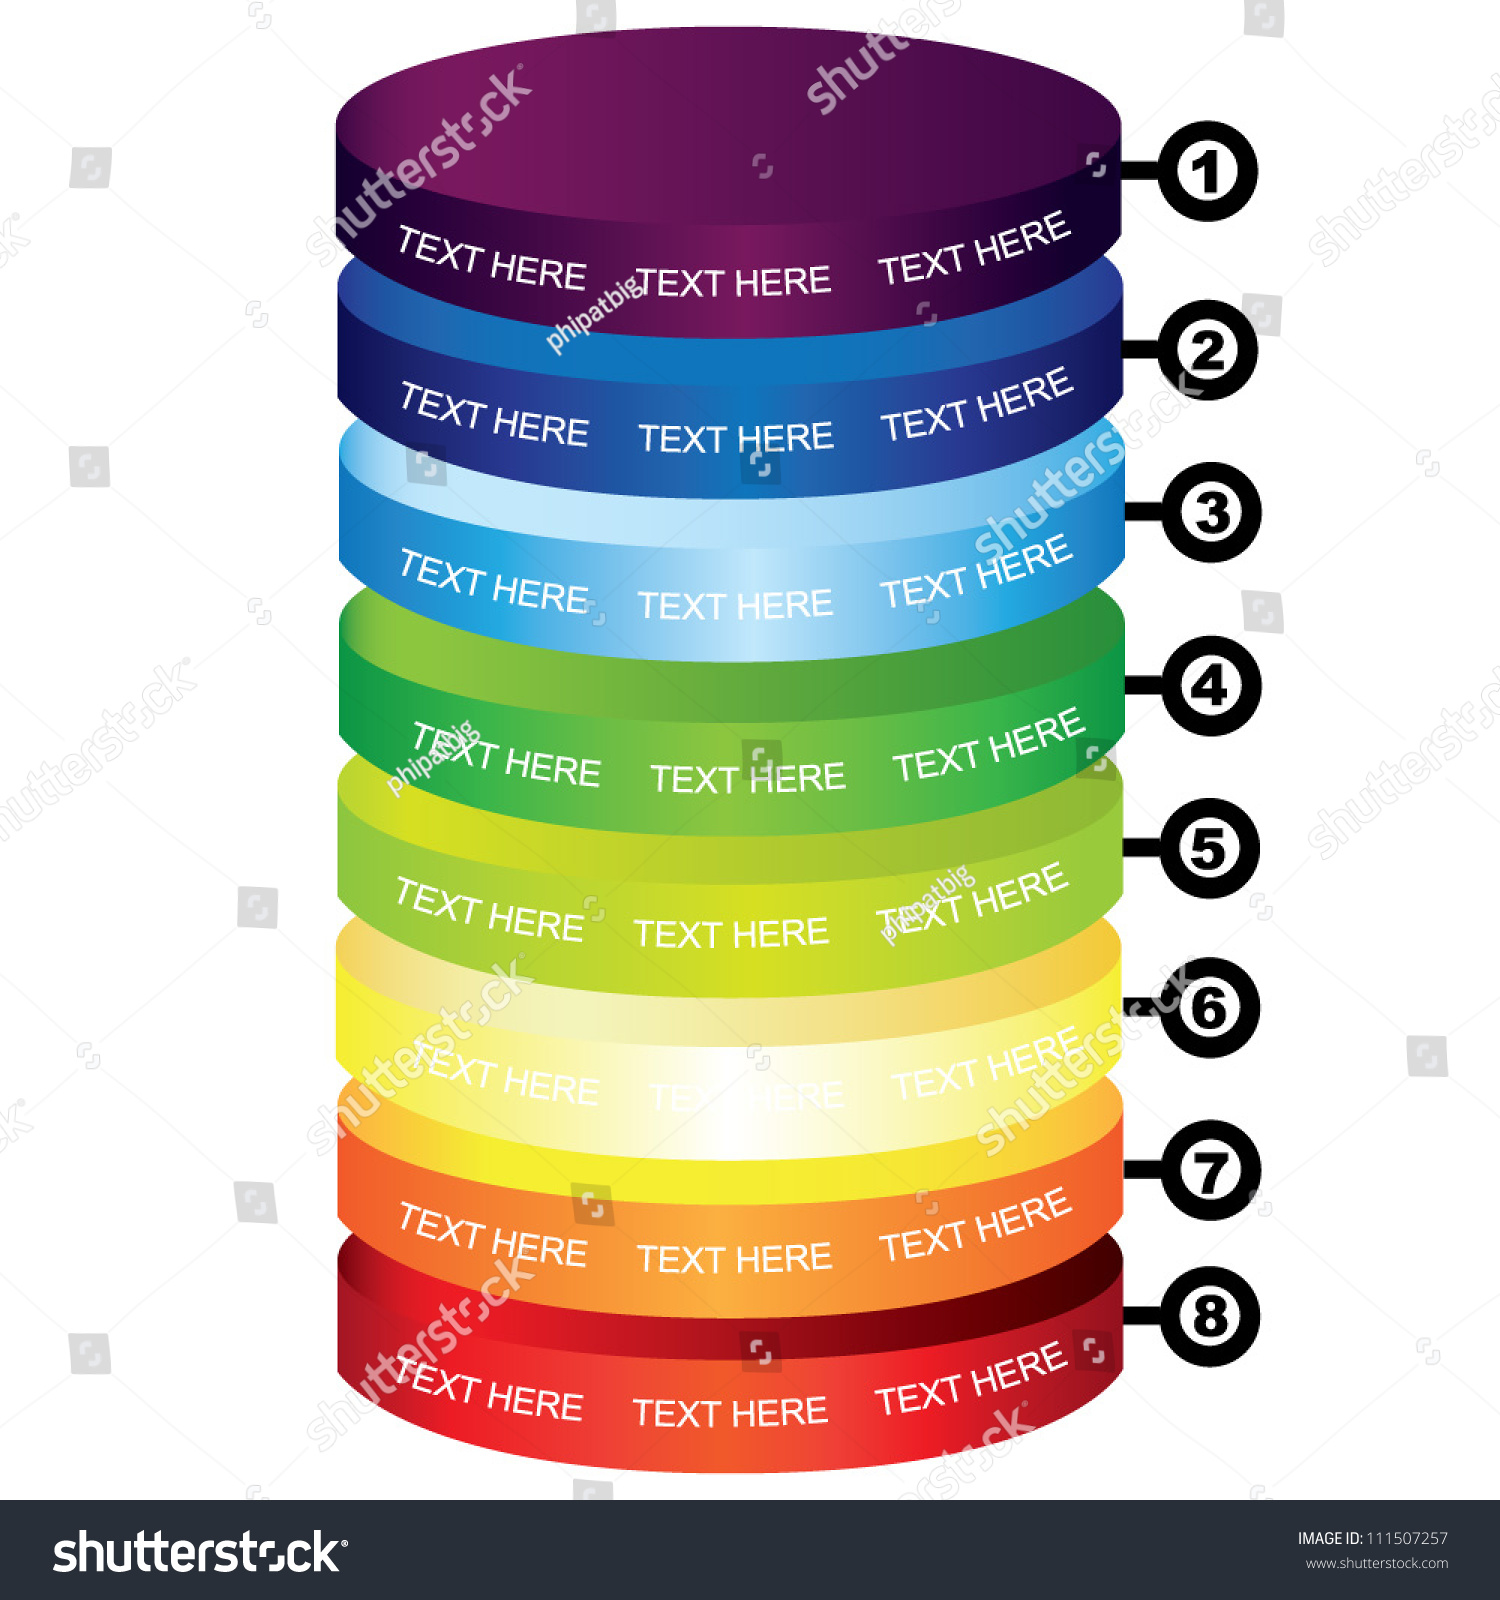 colorful cylinder diagram stock vector illustration     colorful cylinder diagram stock vector illustration    shutterstock